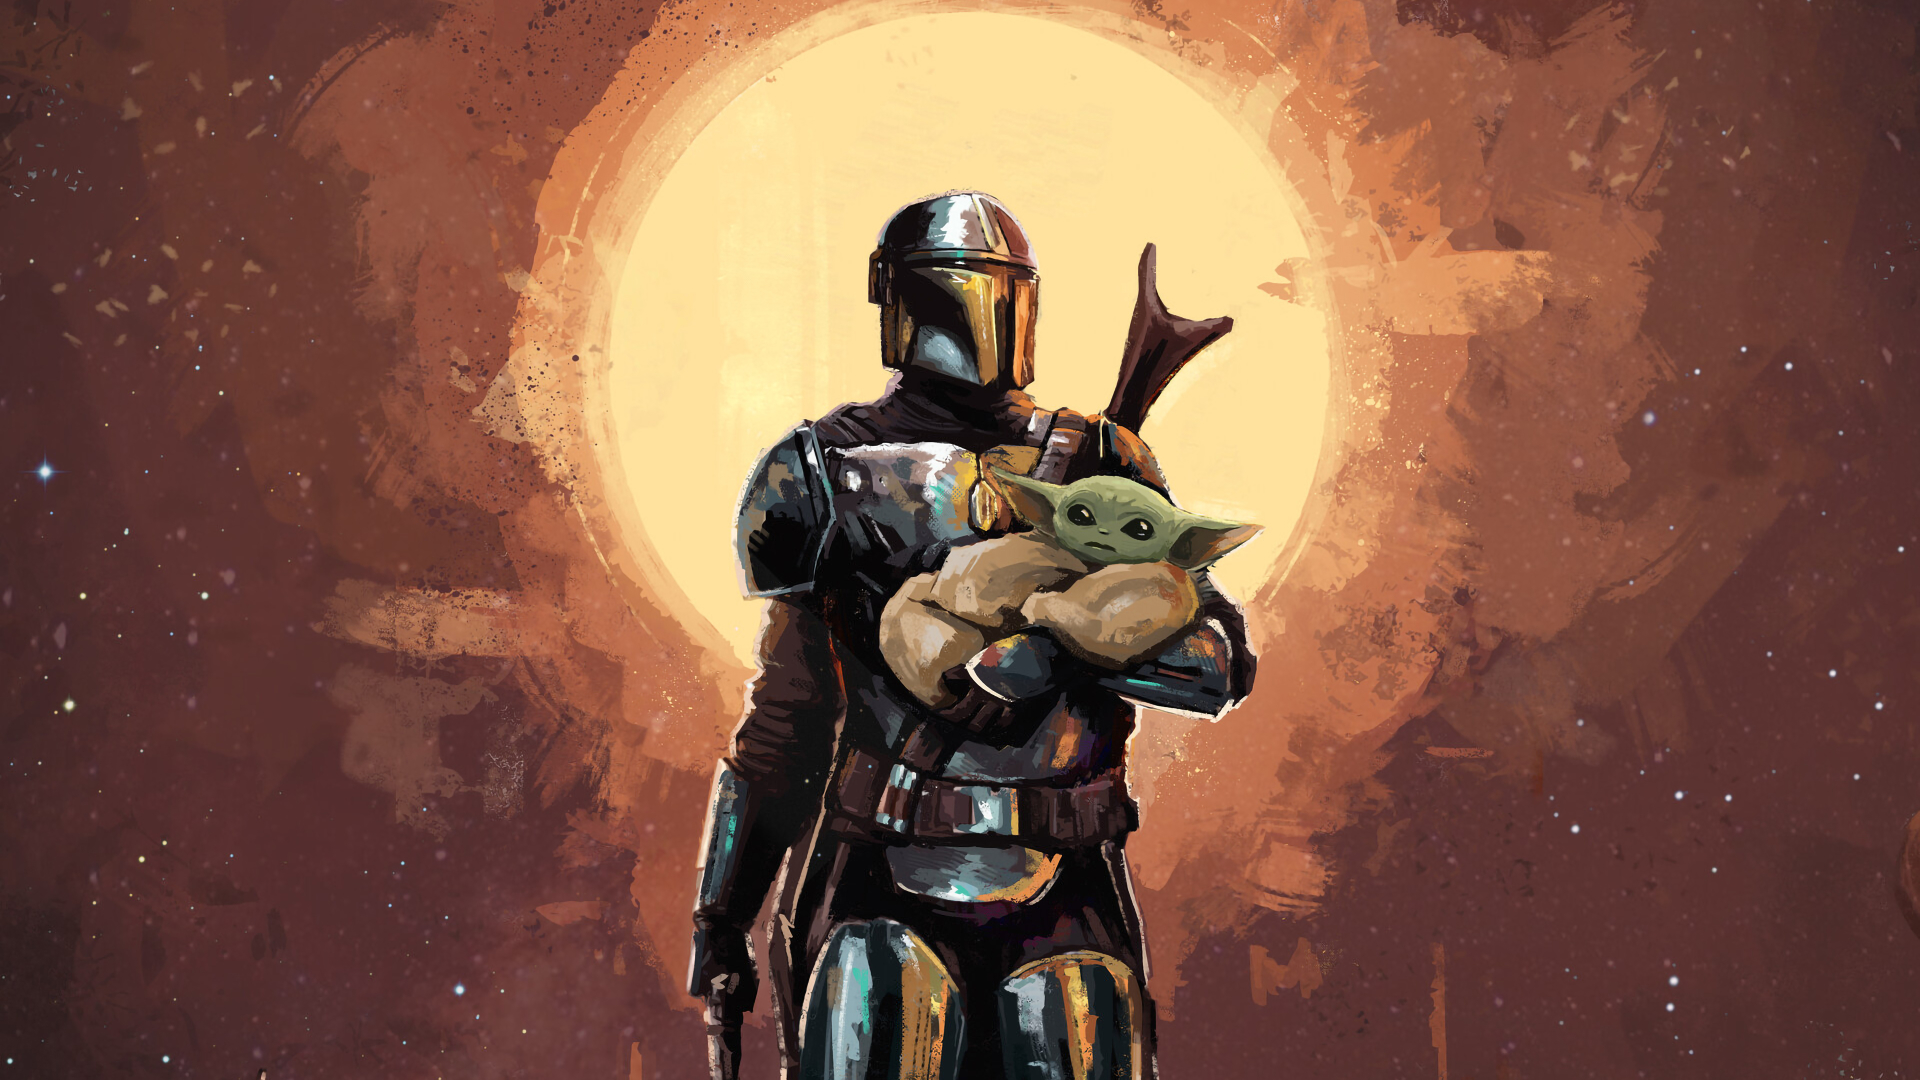 1920x1080 The Mandalorian And Baby Yoda Art 1080p Laptop Full Hd Wallpaper Hd Tv Series 4k Wallpapers Images Photos And Background